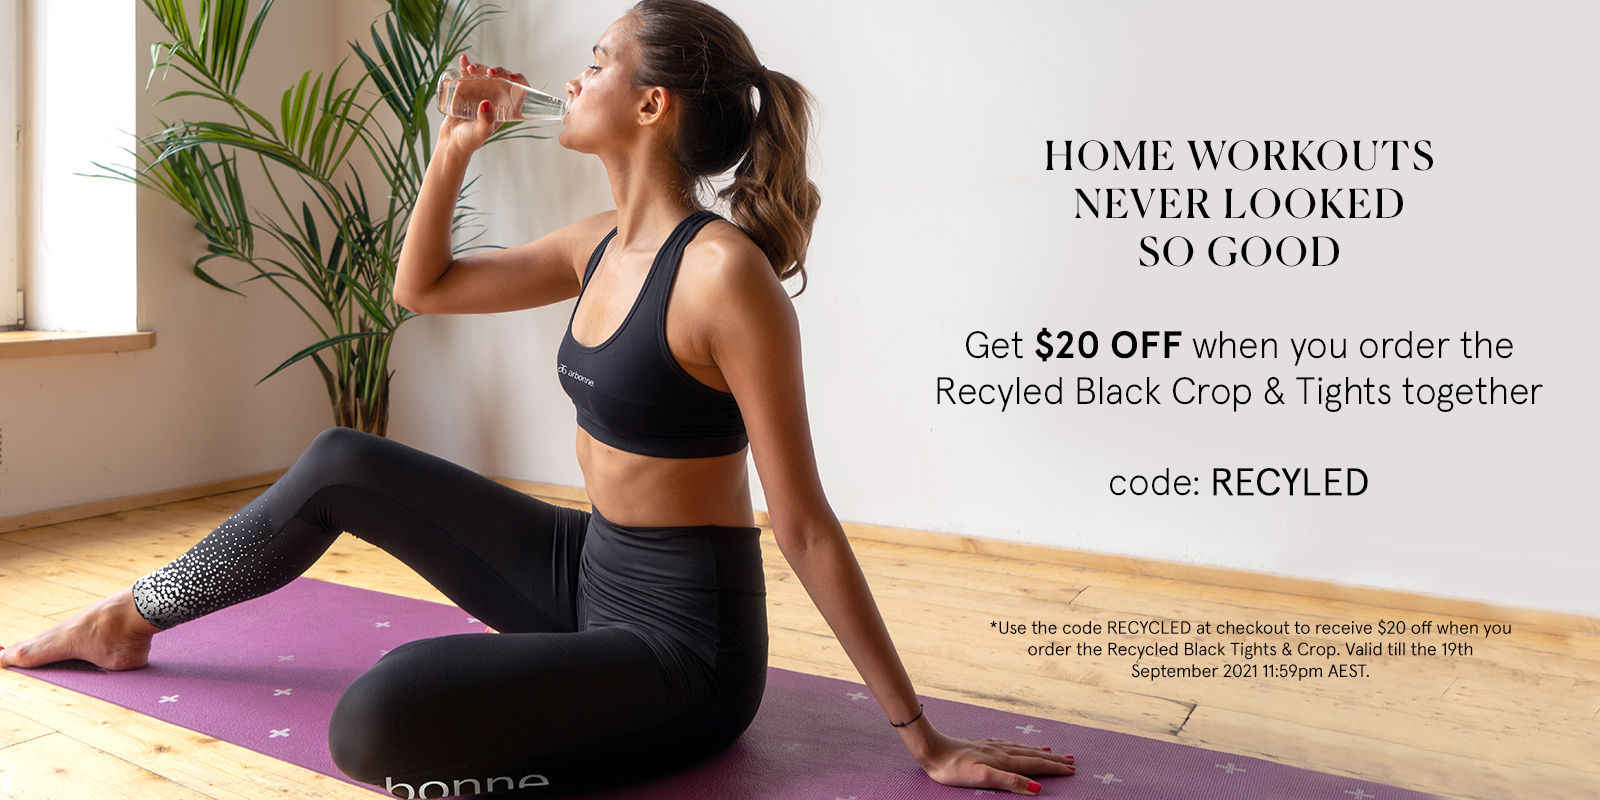 Recycled Leggings and crops offer